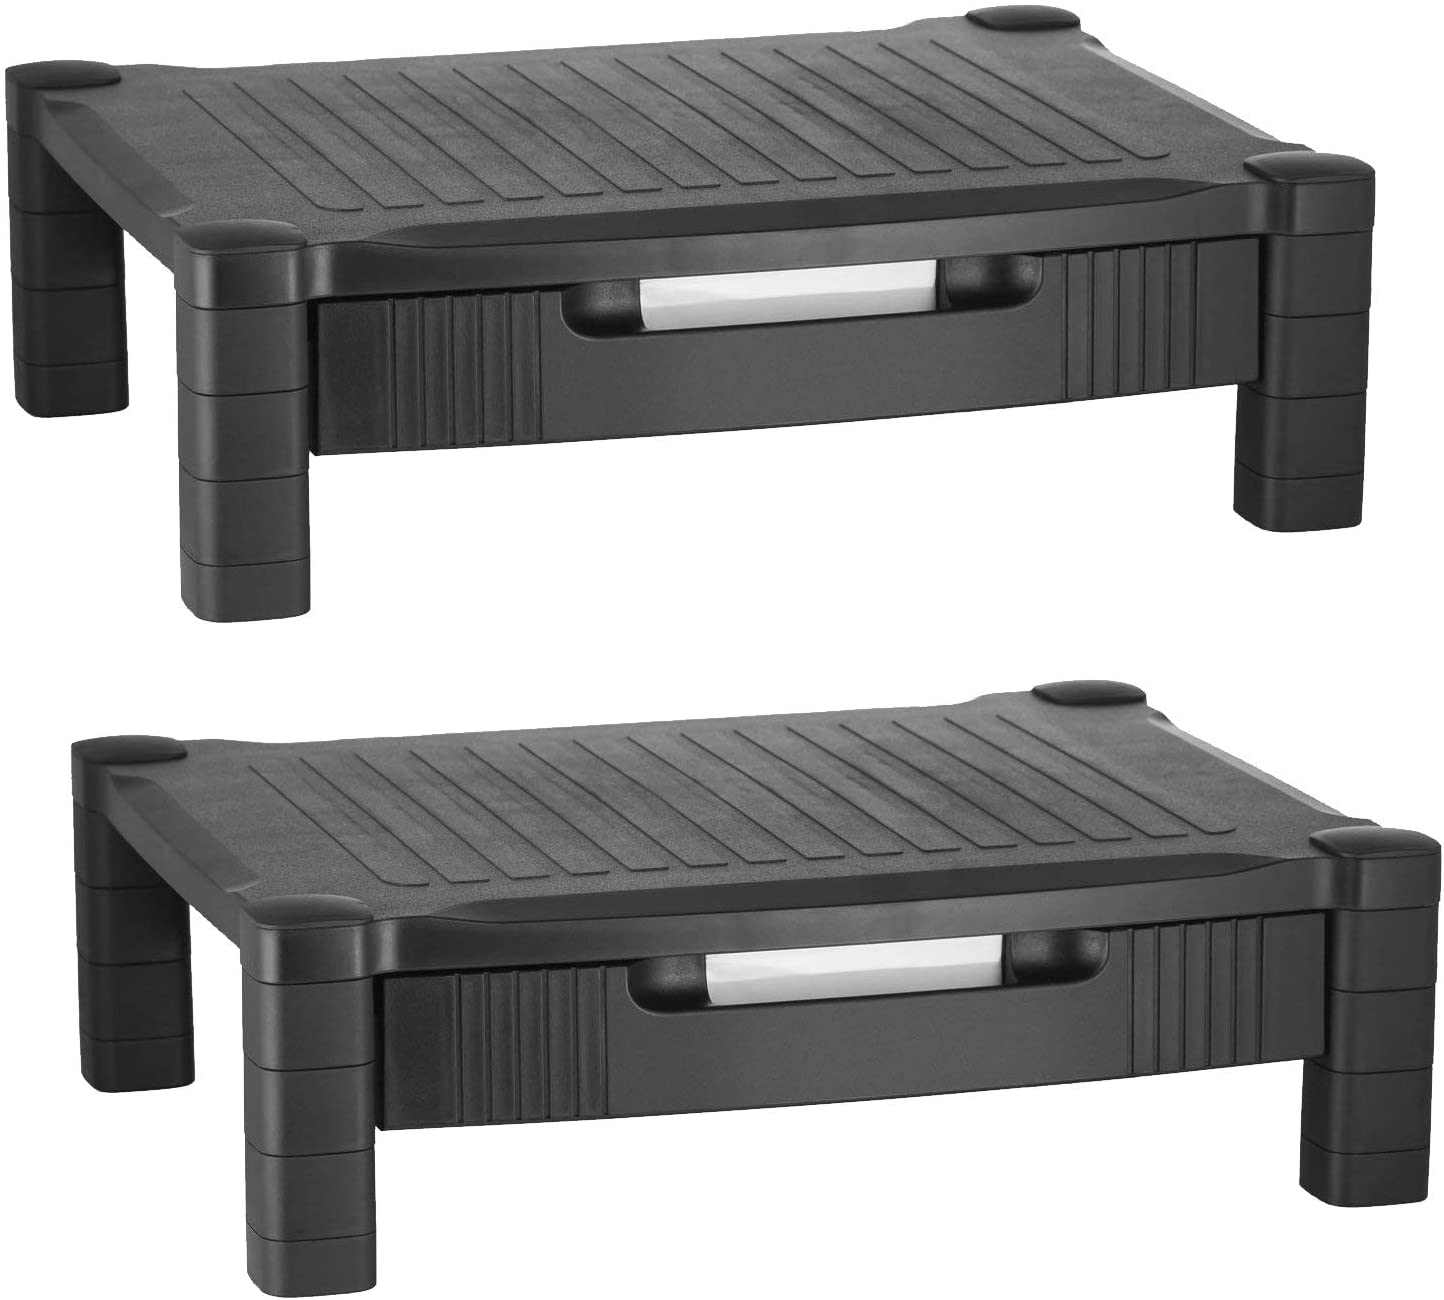 Monitor Stand Riser Computer Desk Organizer with Pull Out Drawer - for Laptop, Screen, Printer, Keyboard, Tablet, Cable Management Storage - Plastic | Black - 2 Pack